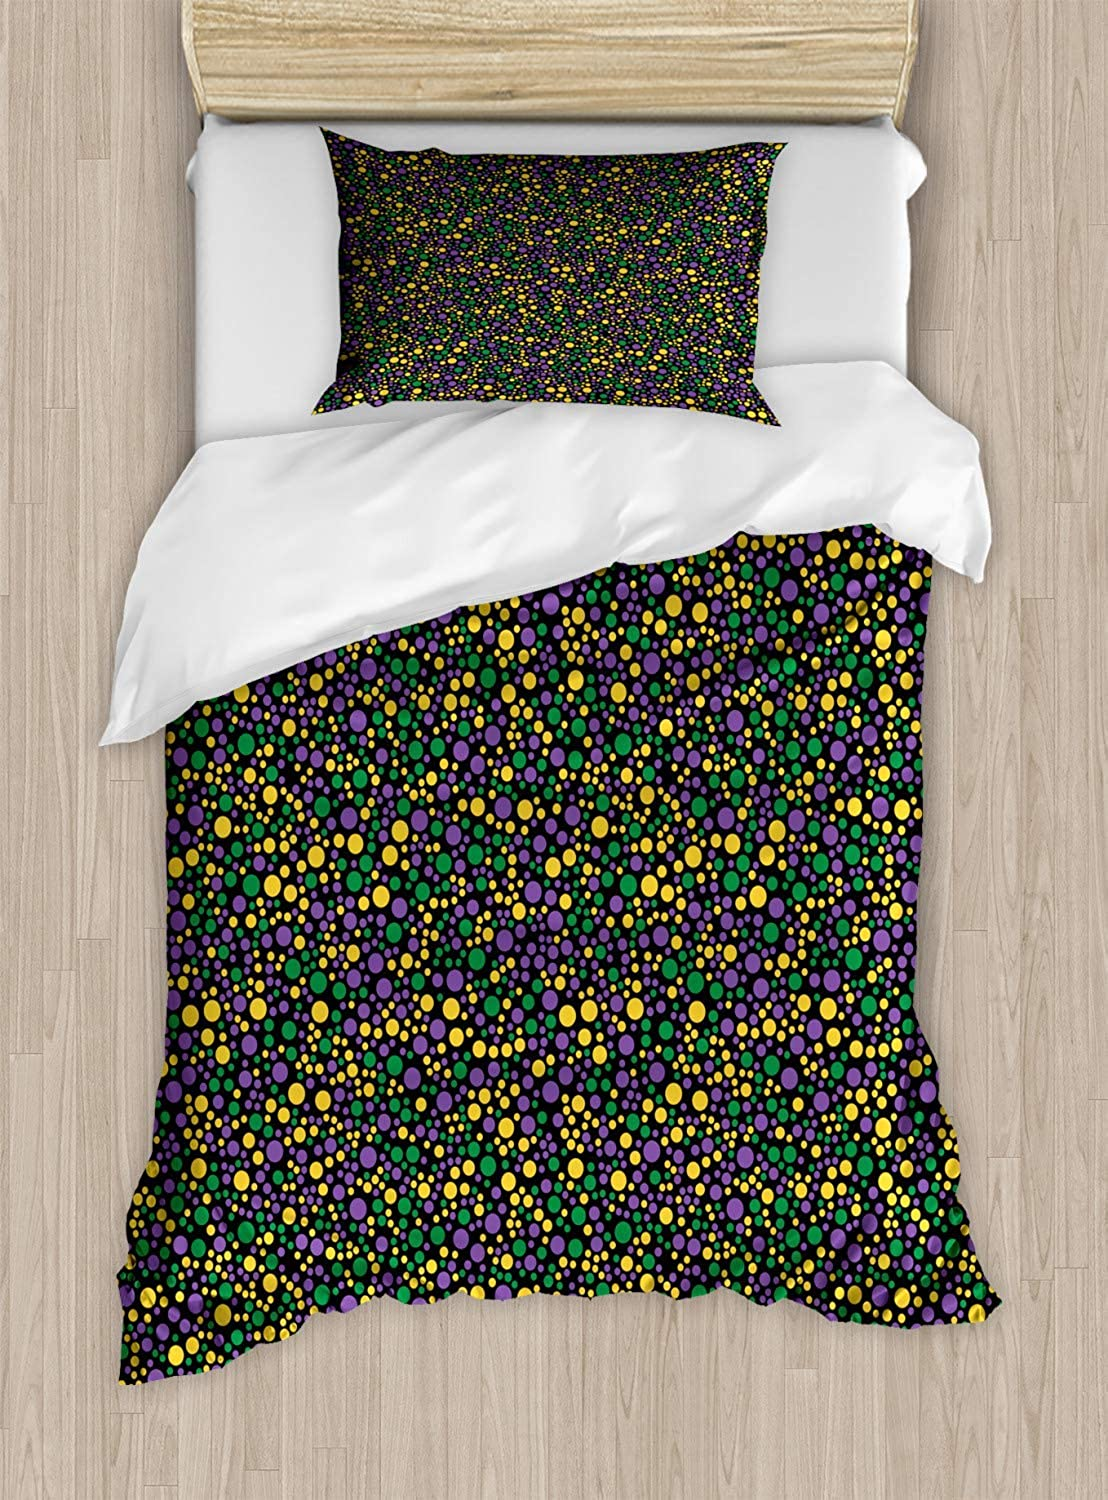 VpinkLVHOME Polka Dot Duvet Cover Set Twin Size colorful Continuous Spots Festive Theme,Kids BeddingDoes Not Shrink Or Wrinkle,Jade Green Earth Yellow purple and Charcoal Grey